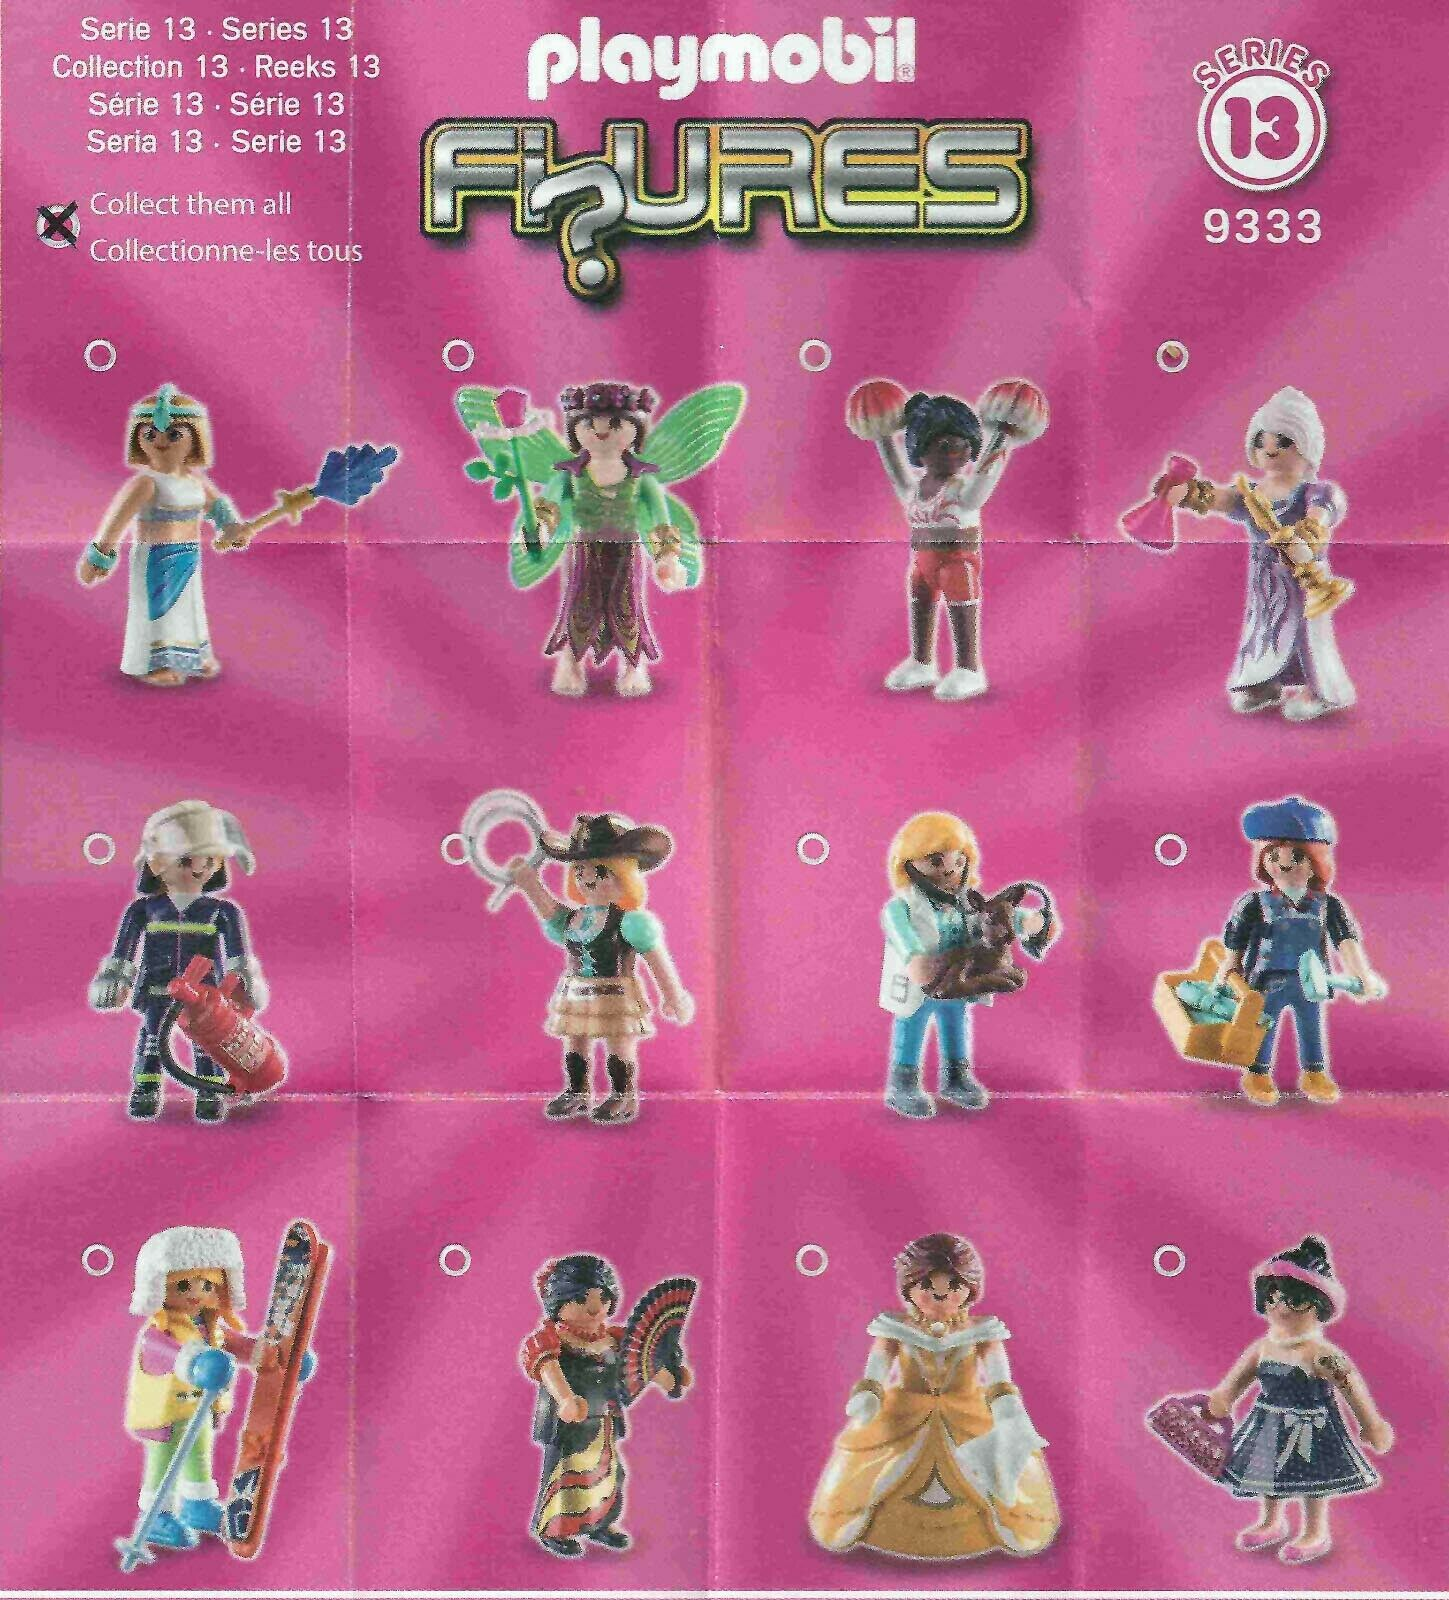 Playmobil Figures Series 13 Blind Bag Set 9333 PINK LOT of 3 NEW Free Shipping